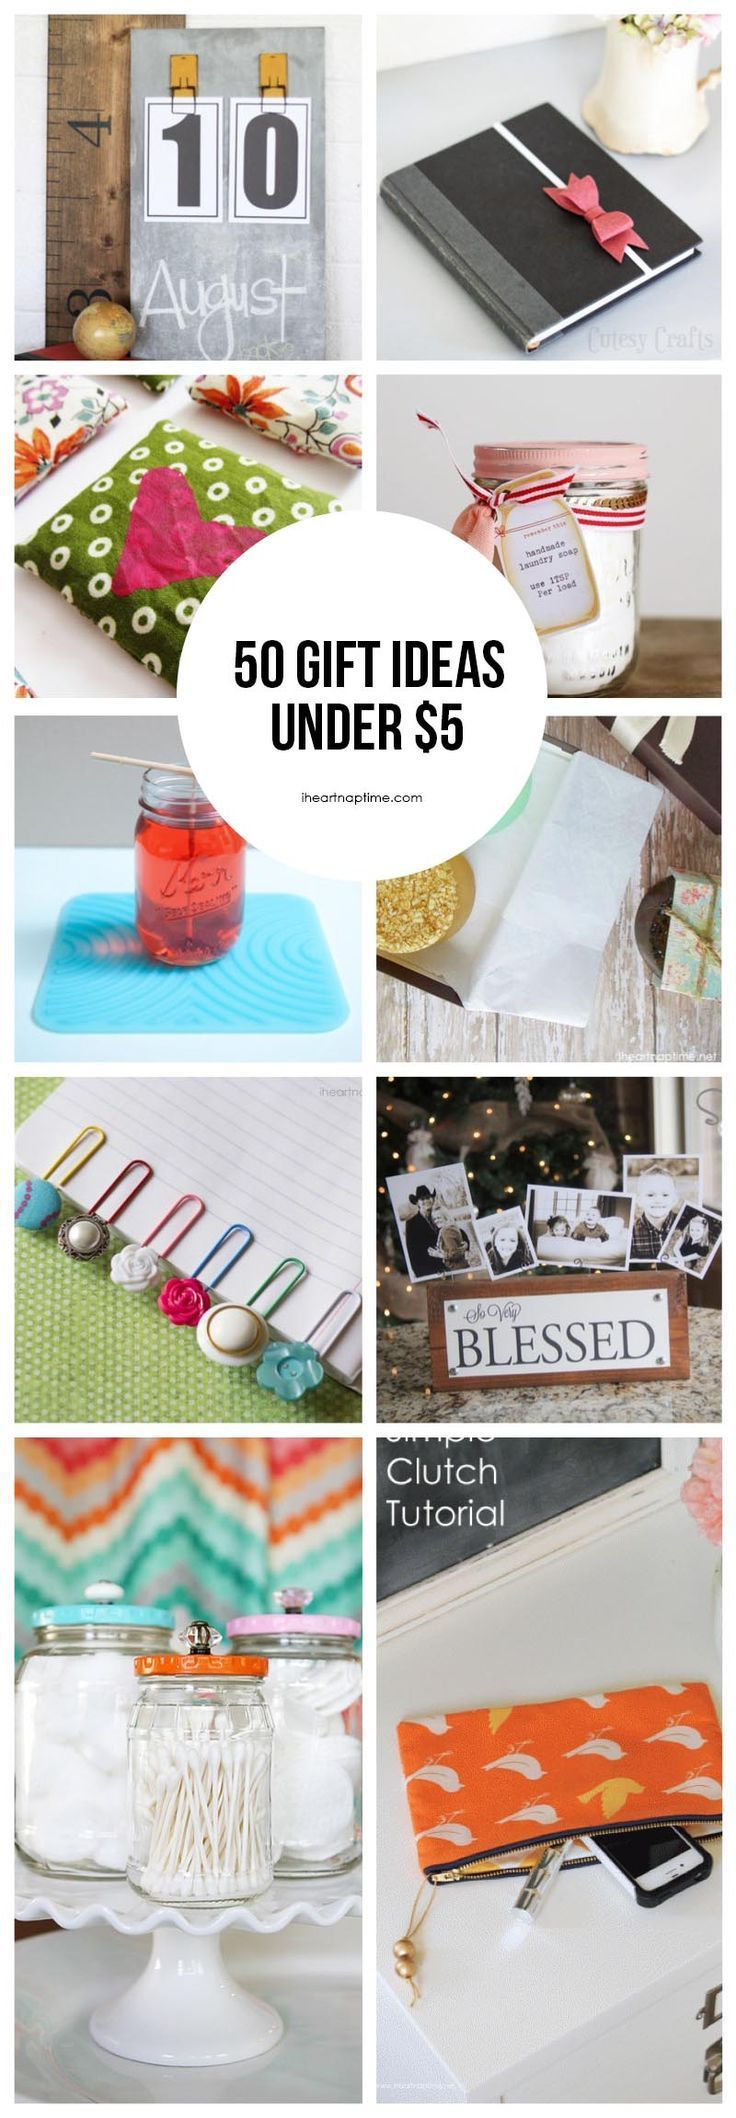 50 homemade gift ideas to make for under $5 featured on iheartnaptime.com ...love all of these ideas!